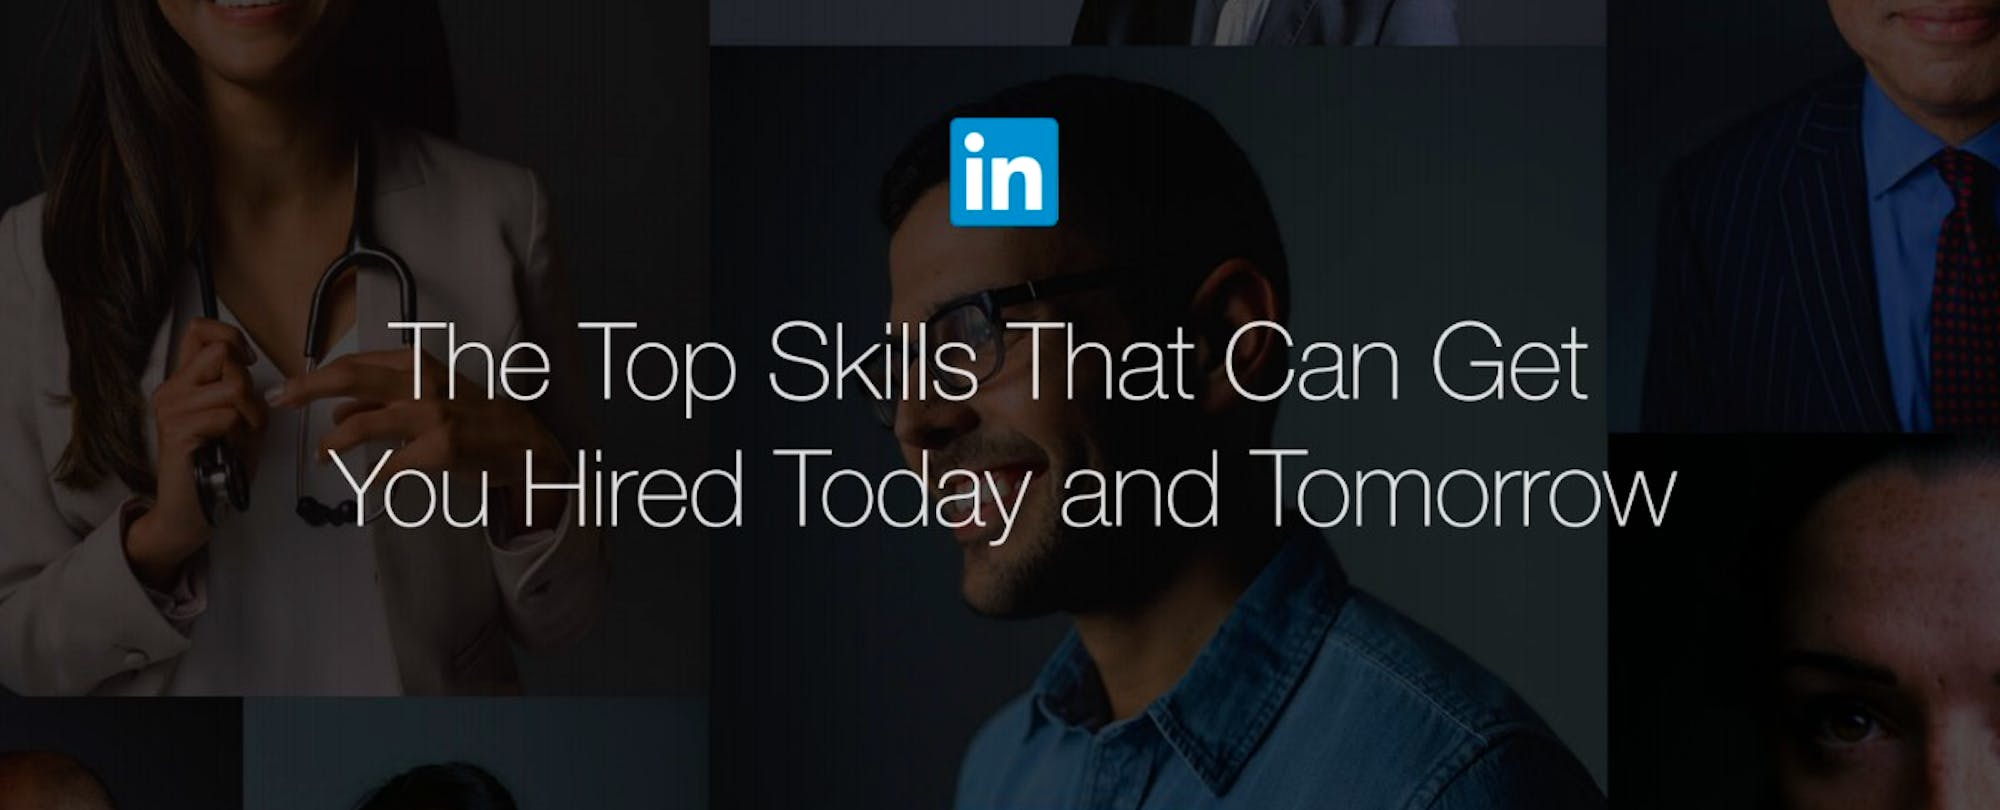 the top skills employers need in 2016 according to linkedin the top skills employers need in 2016 according to linkedin